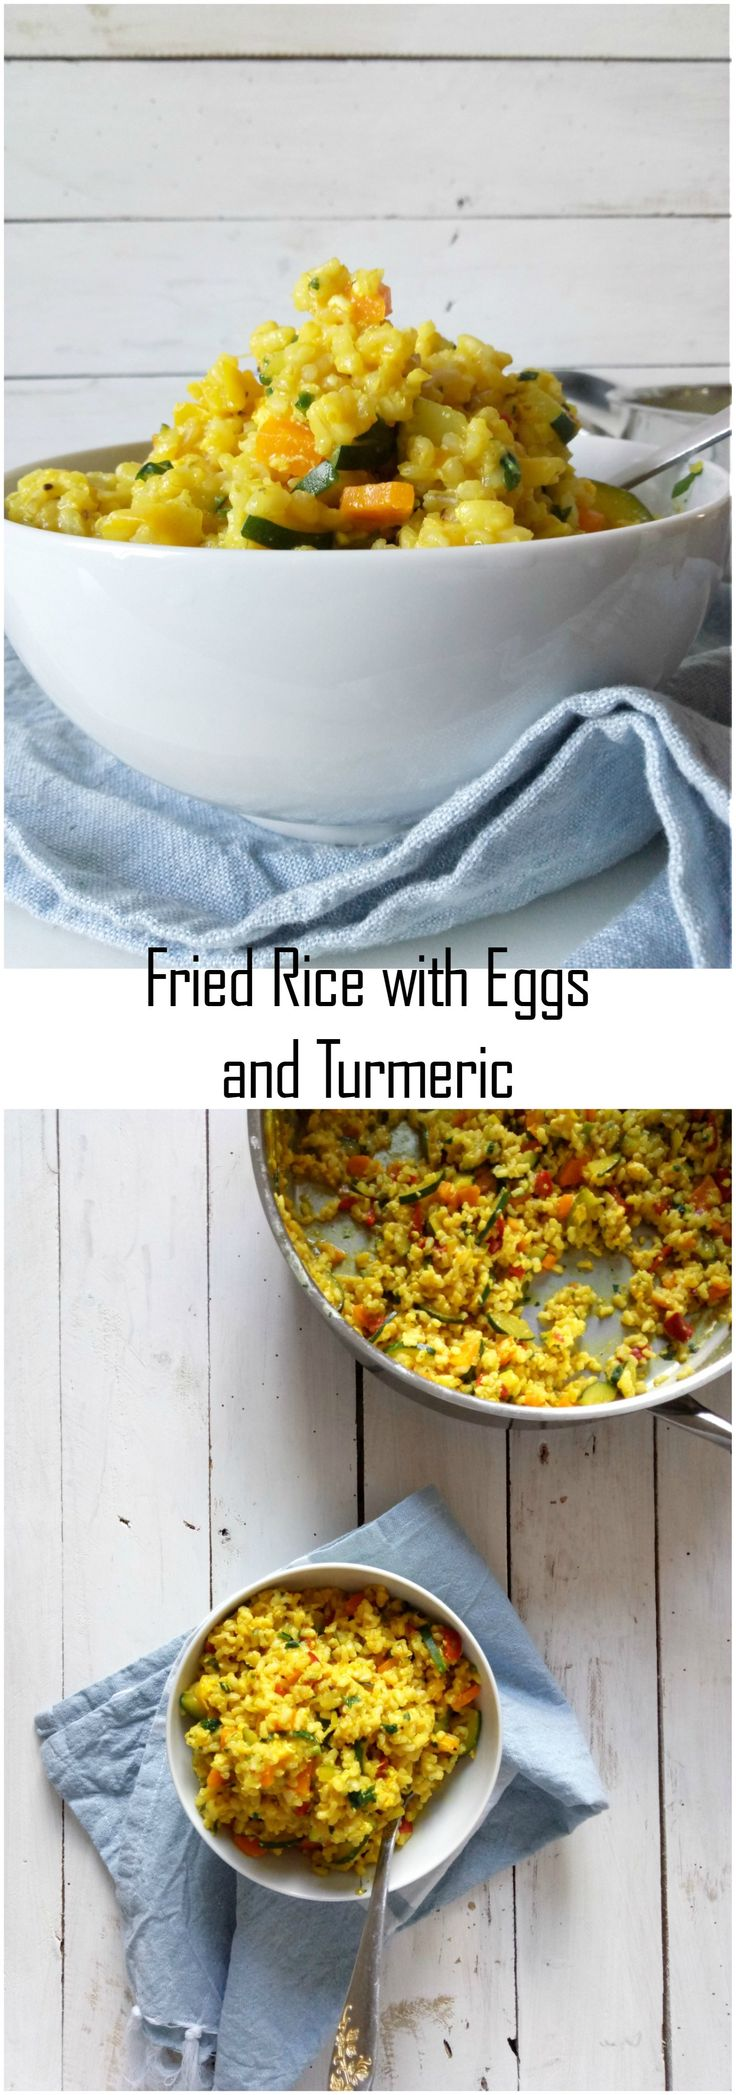 Fried Rice with Eggs and Turmeric #friedrice #delicious #ricerecipes